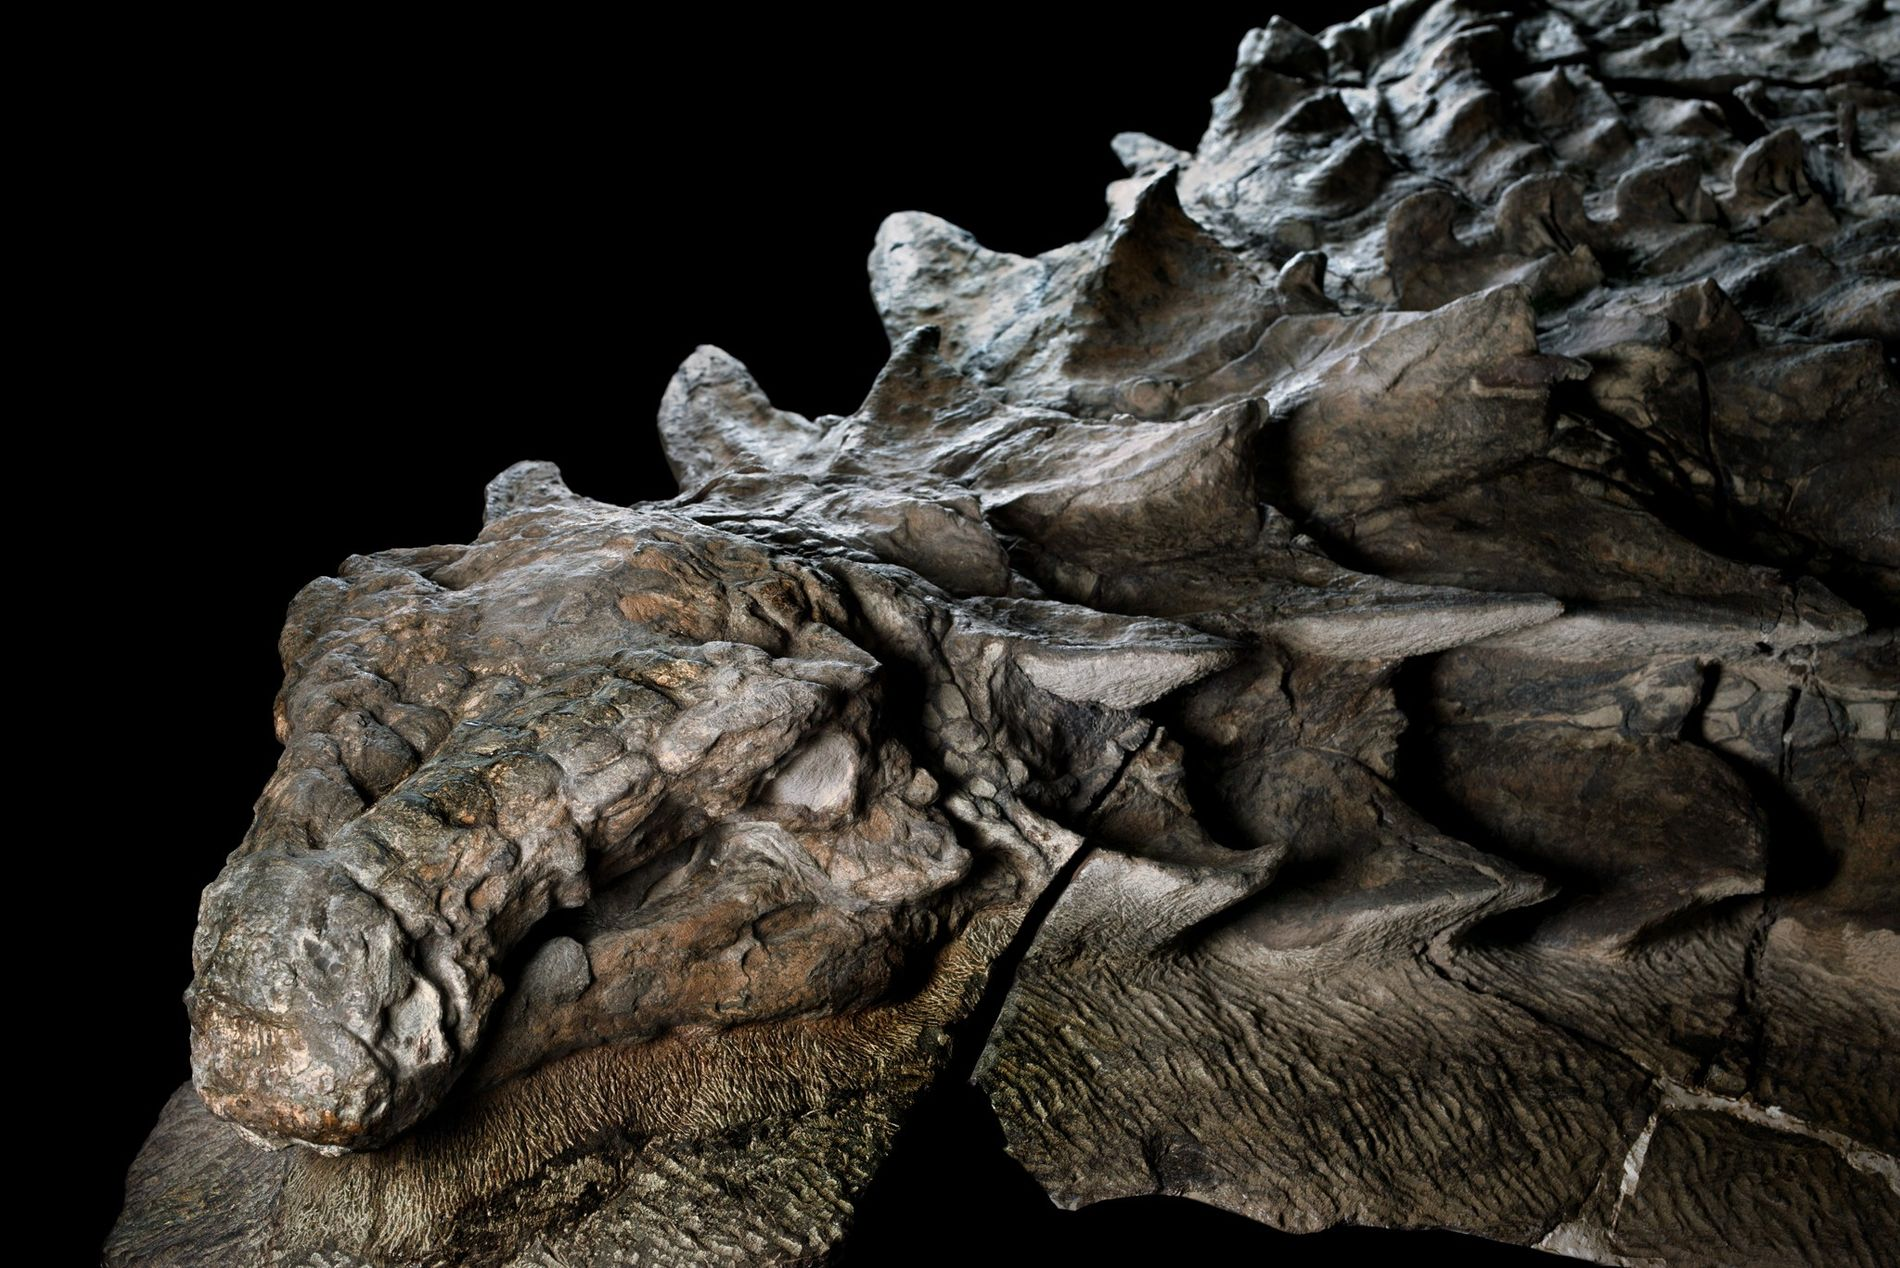 Some 110 million years ago, this armoured plant-eater lumbered through what is now western Canada, until a flooded river swept it into open sea. The dinosaur's undersea burial preserved its armour in exquisite detail. Its skull still bears tile-like plates and a gray patina of fossilised skins.